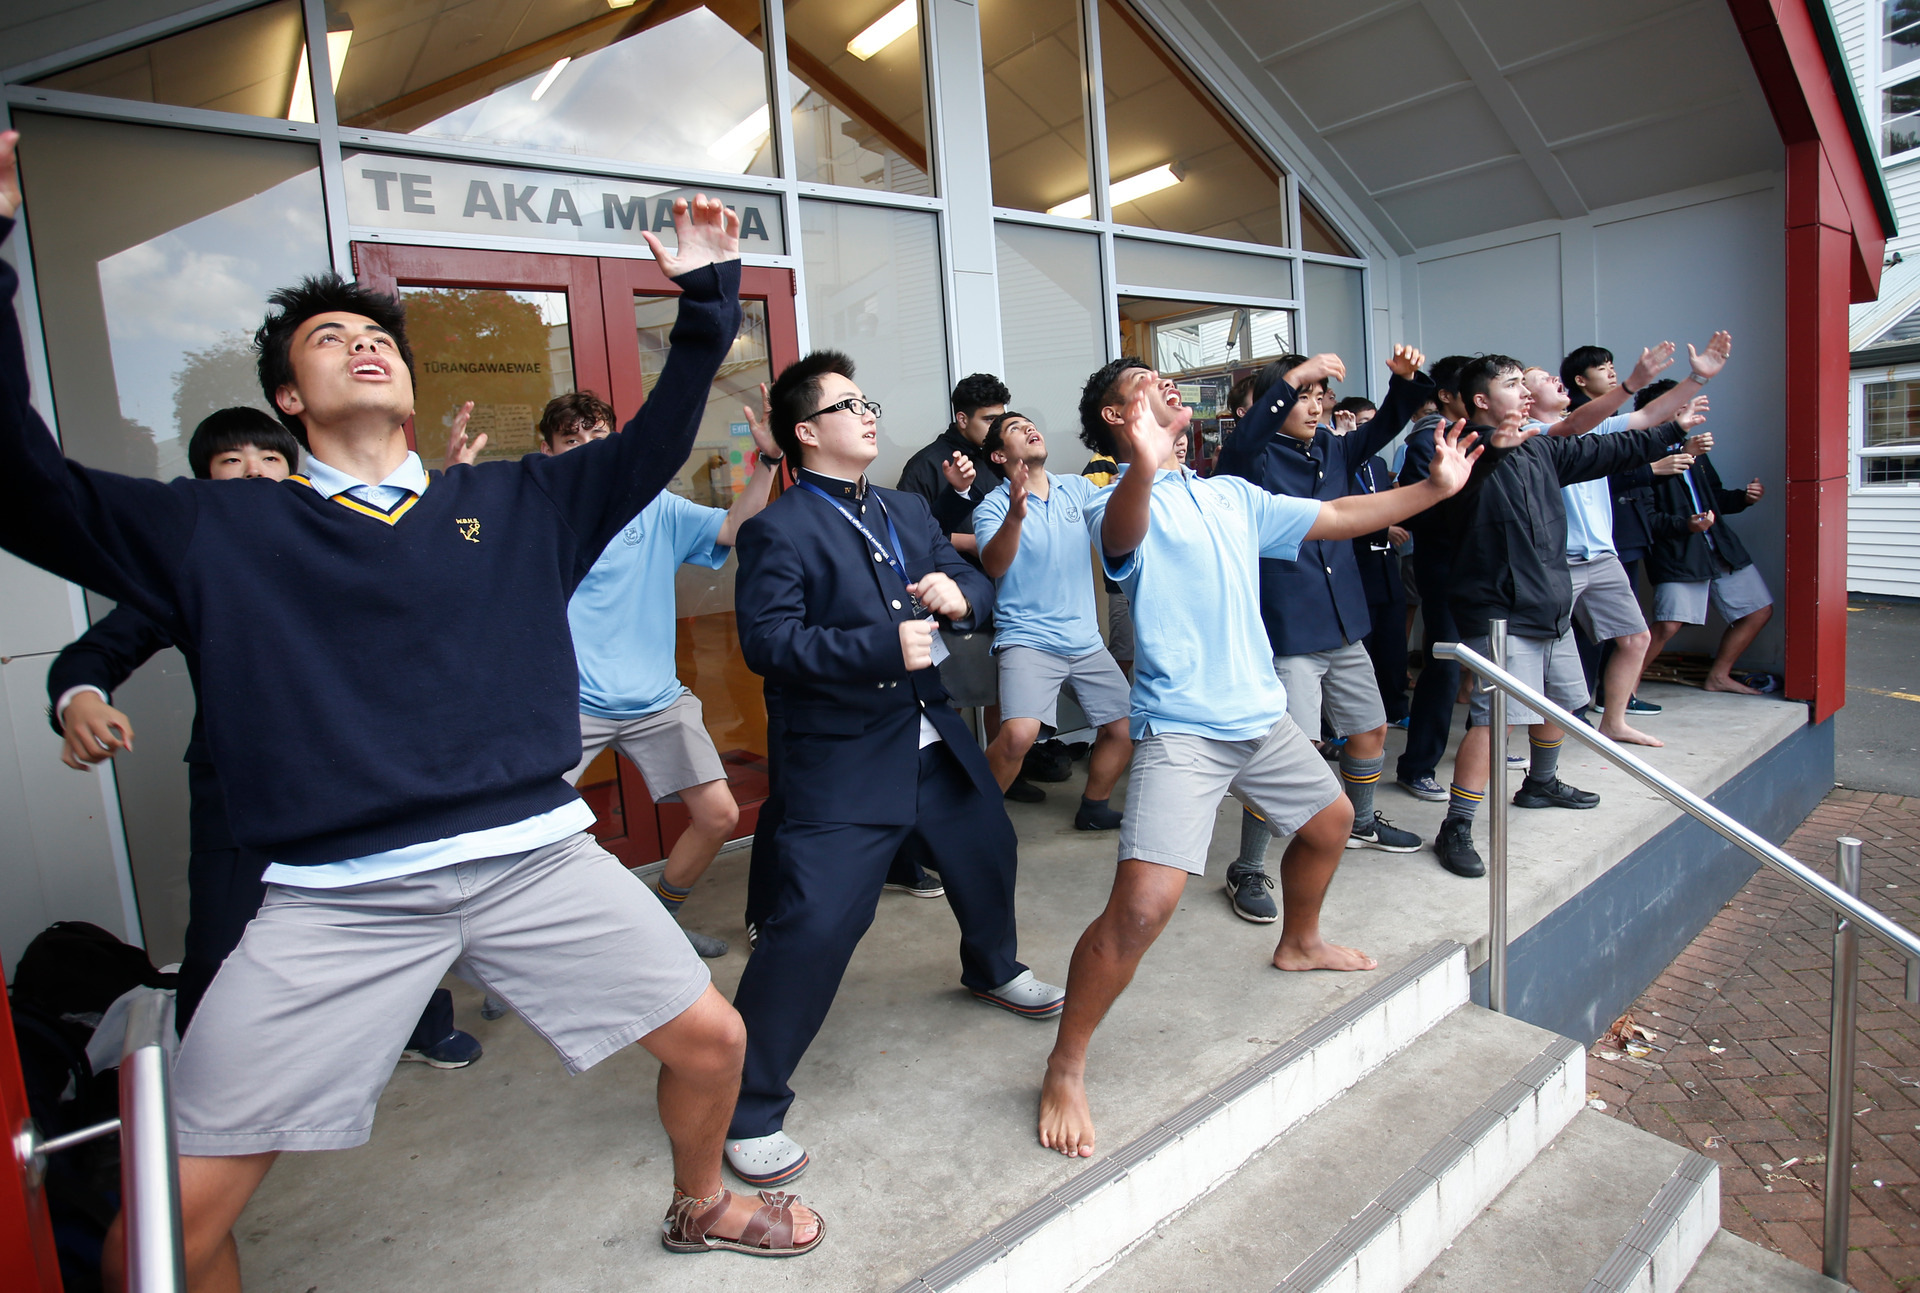 Japanese visitors learn the haka at Whangārei Boys High school